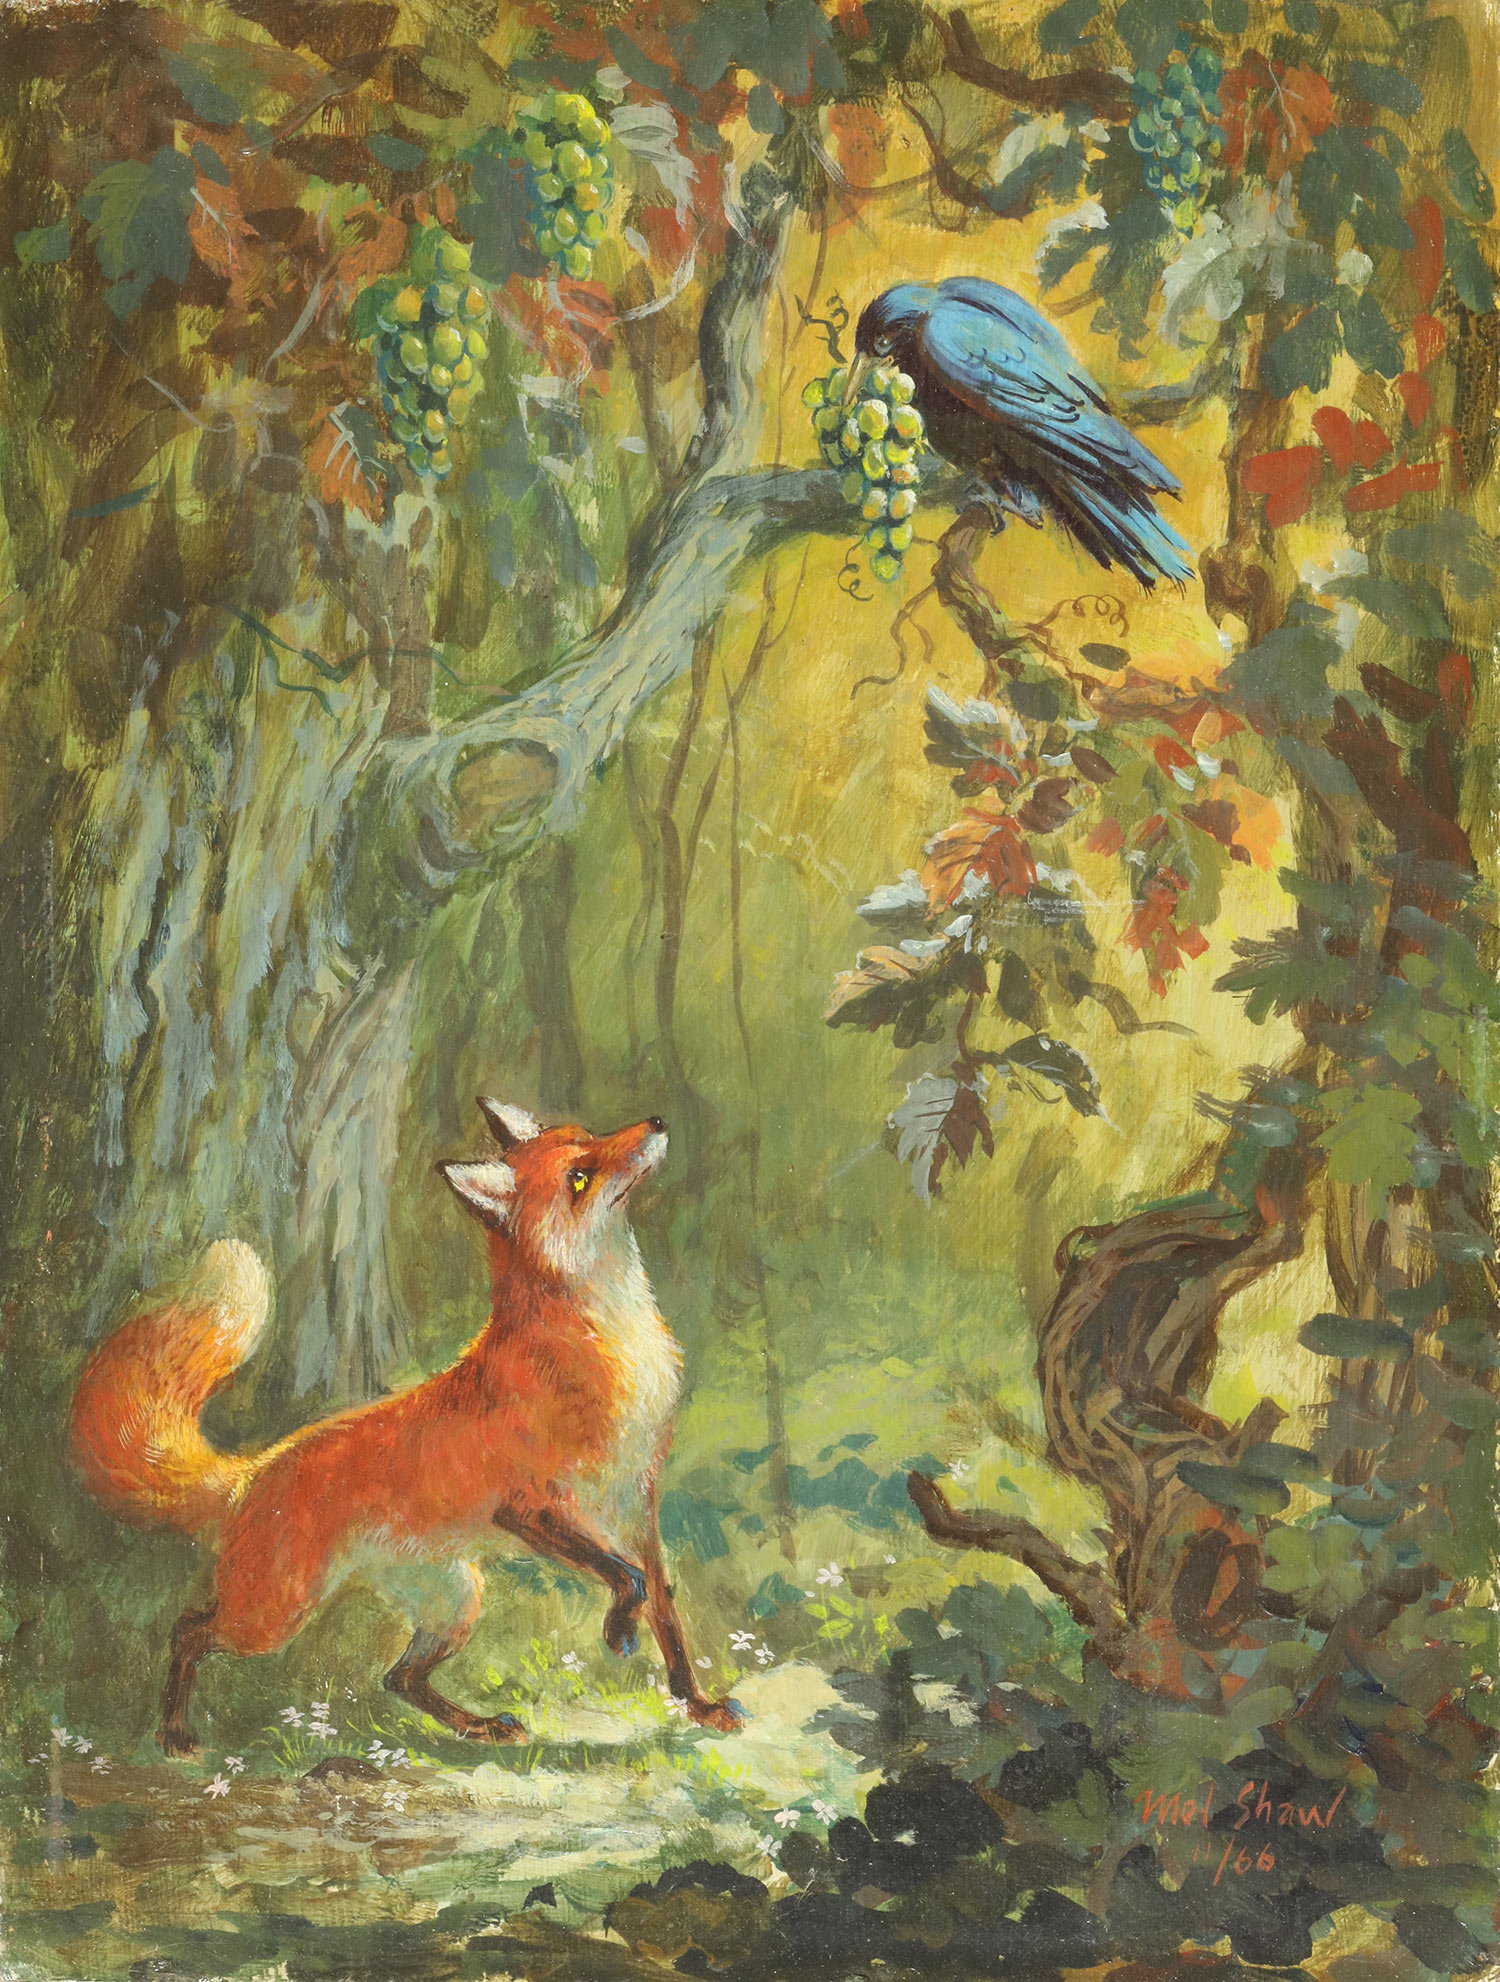 "Mel Shaw painting, ""The Fox and the Grapes, Aesop Fable,"" 1966. (Image: Courtesy Rick and Janet Shaw and Melissa Couch, © Mel Shaw Studios.)"